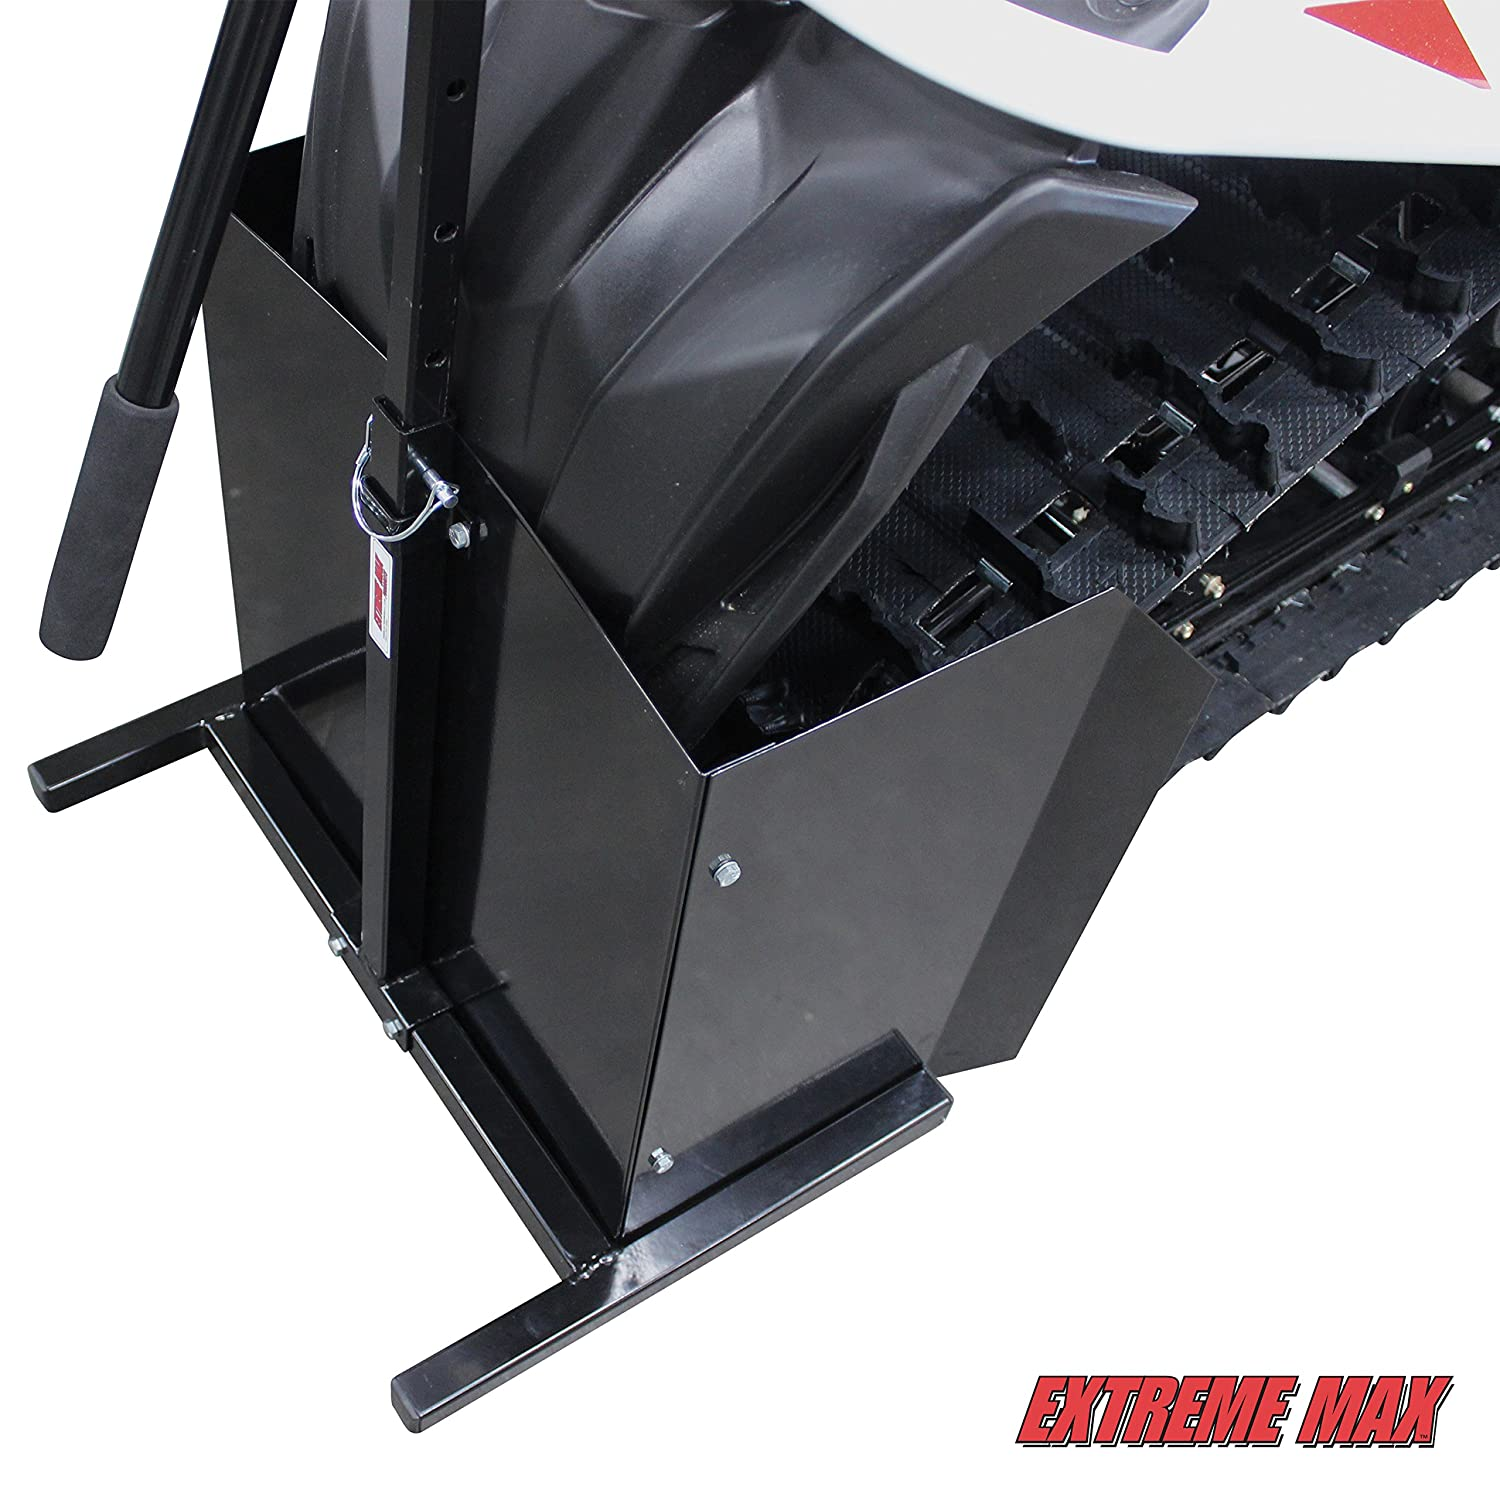 Extreme Max 5001.6026 Lever Lift Stand with Warm-Up Shield